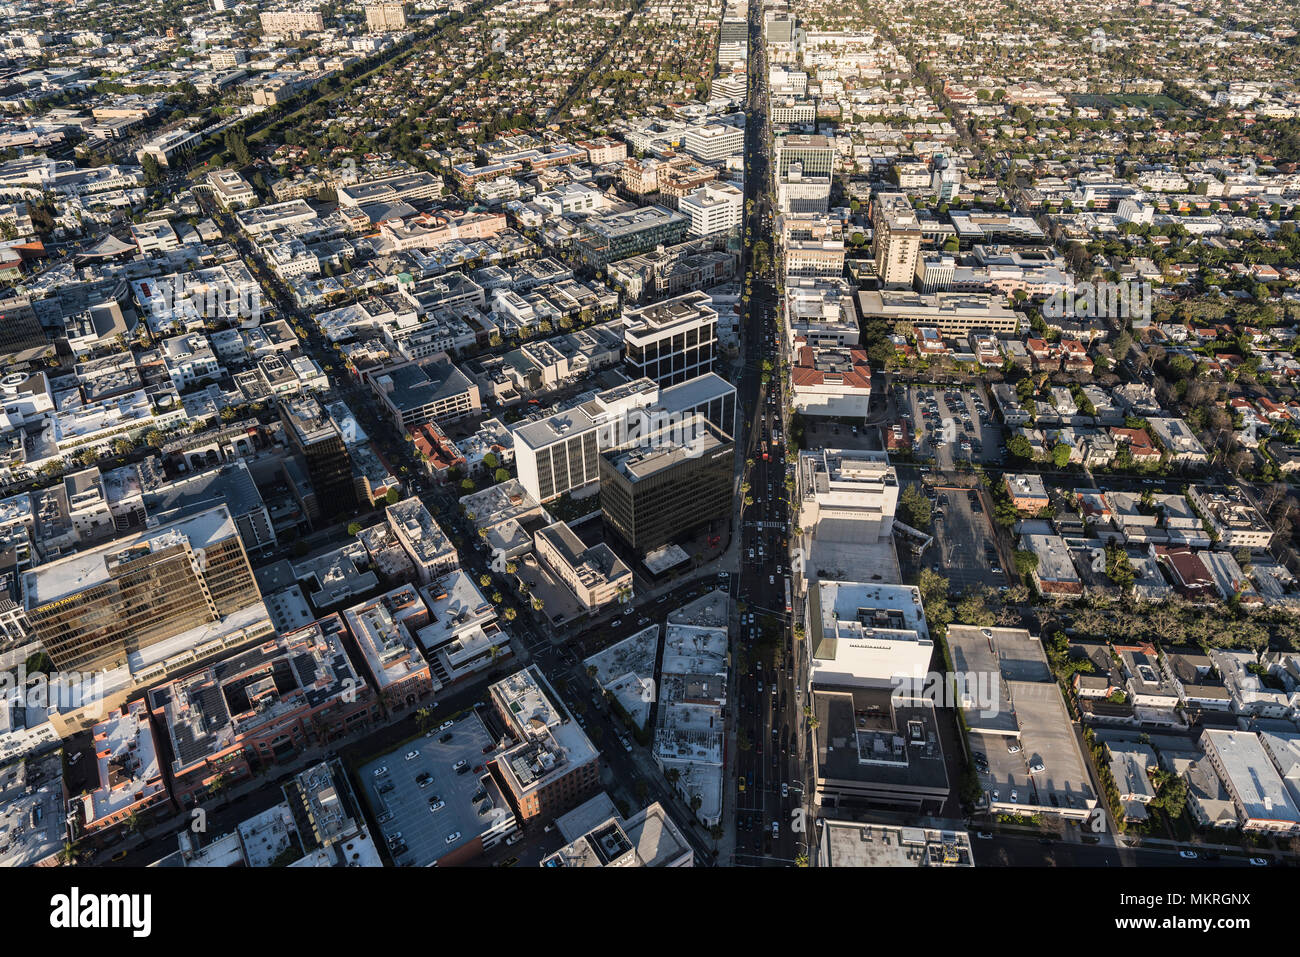 Beverly Hills, California, USA - April 18, 2018:  Afternoon aerial view of commercial buildings along Wilshire Blvd. - Stock Image